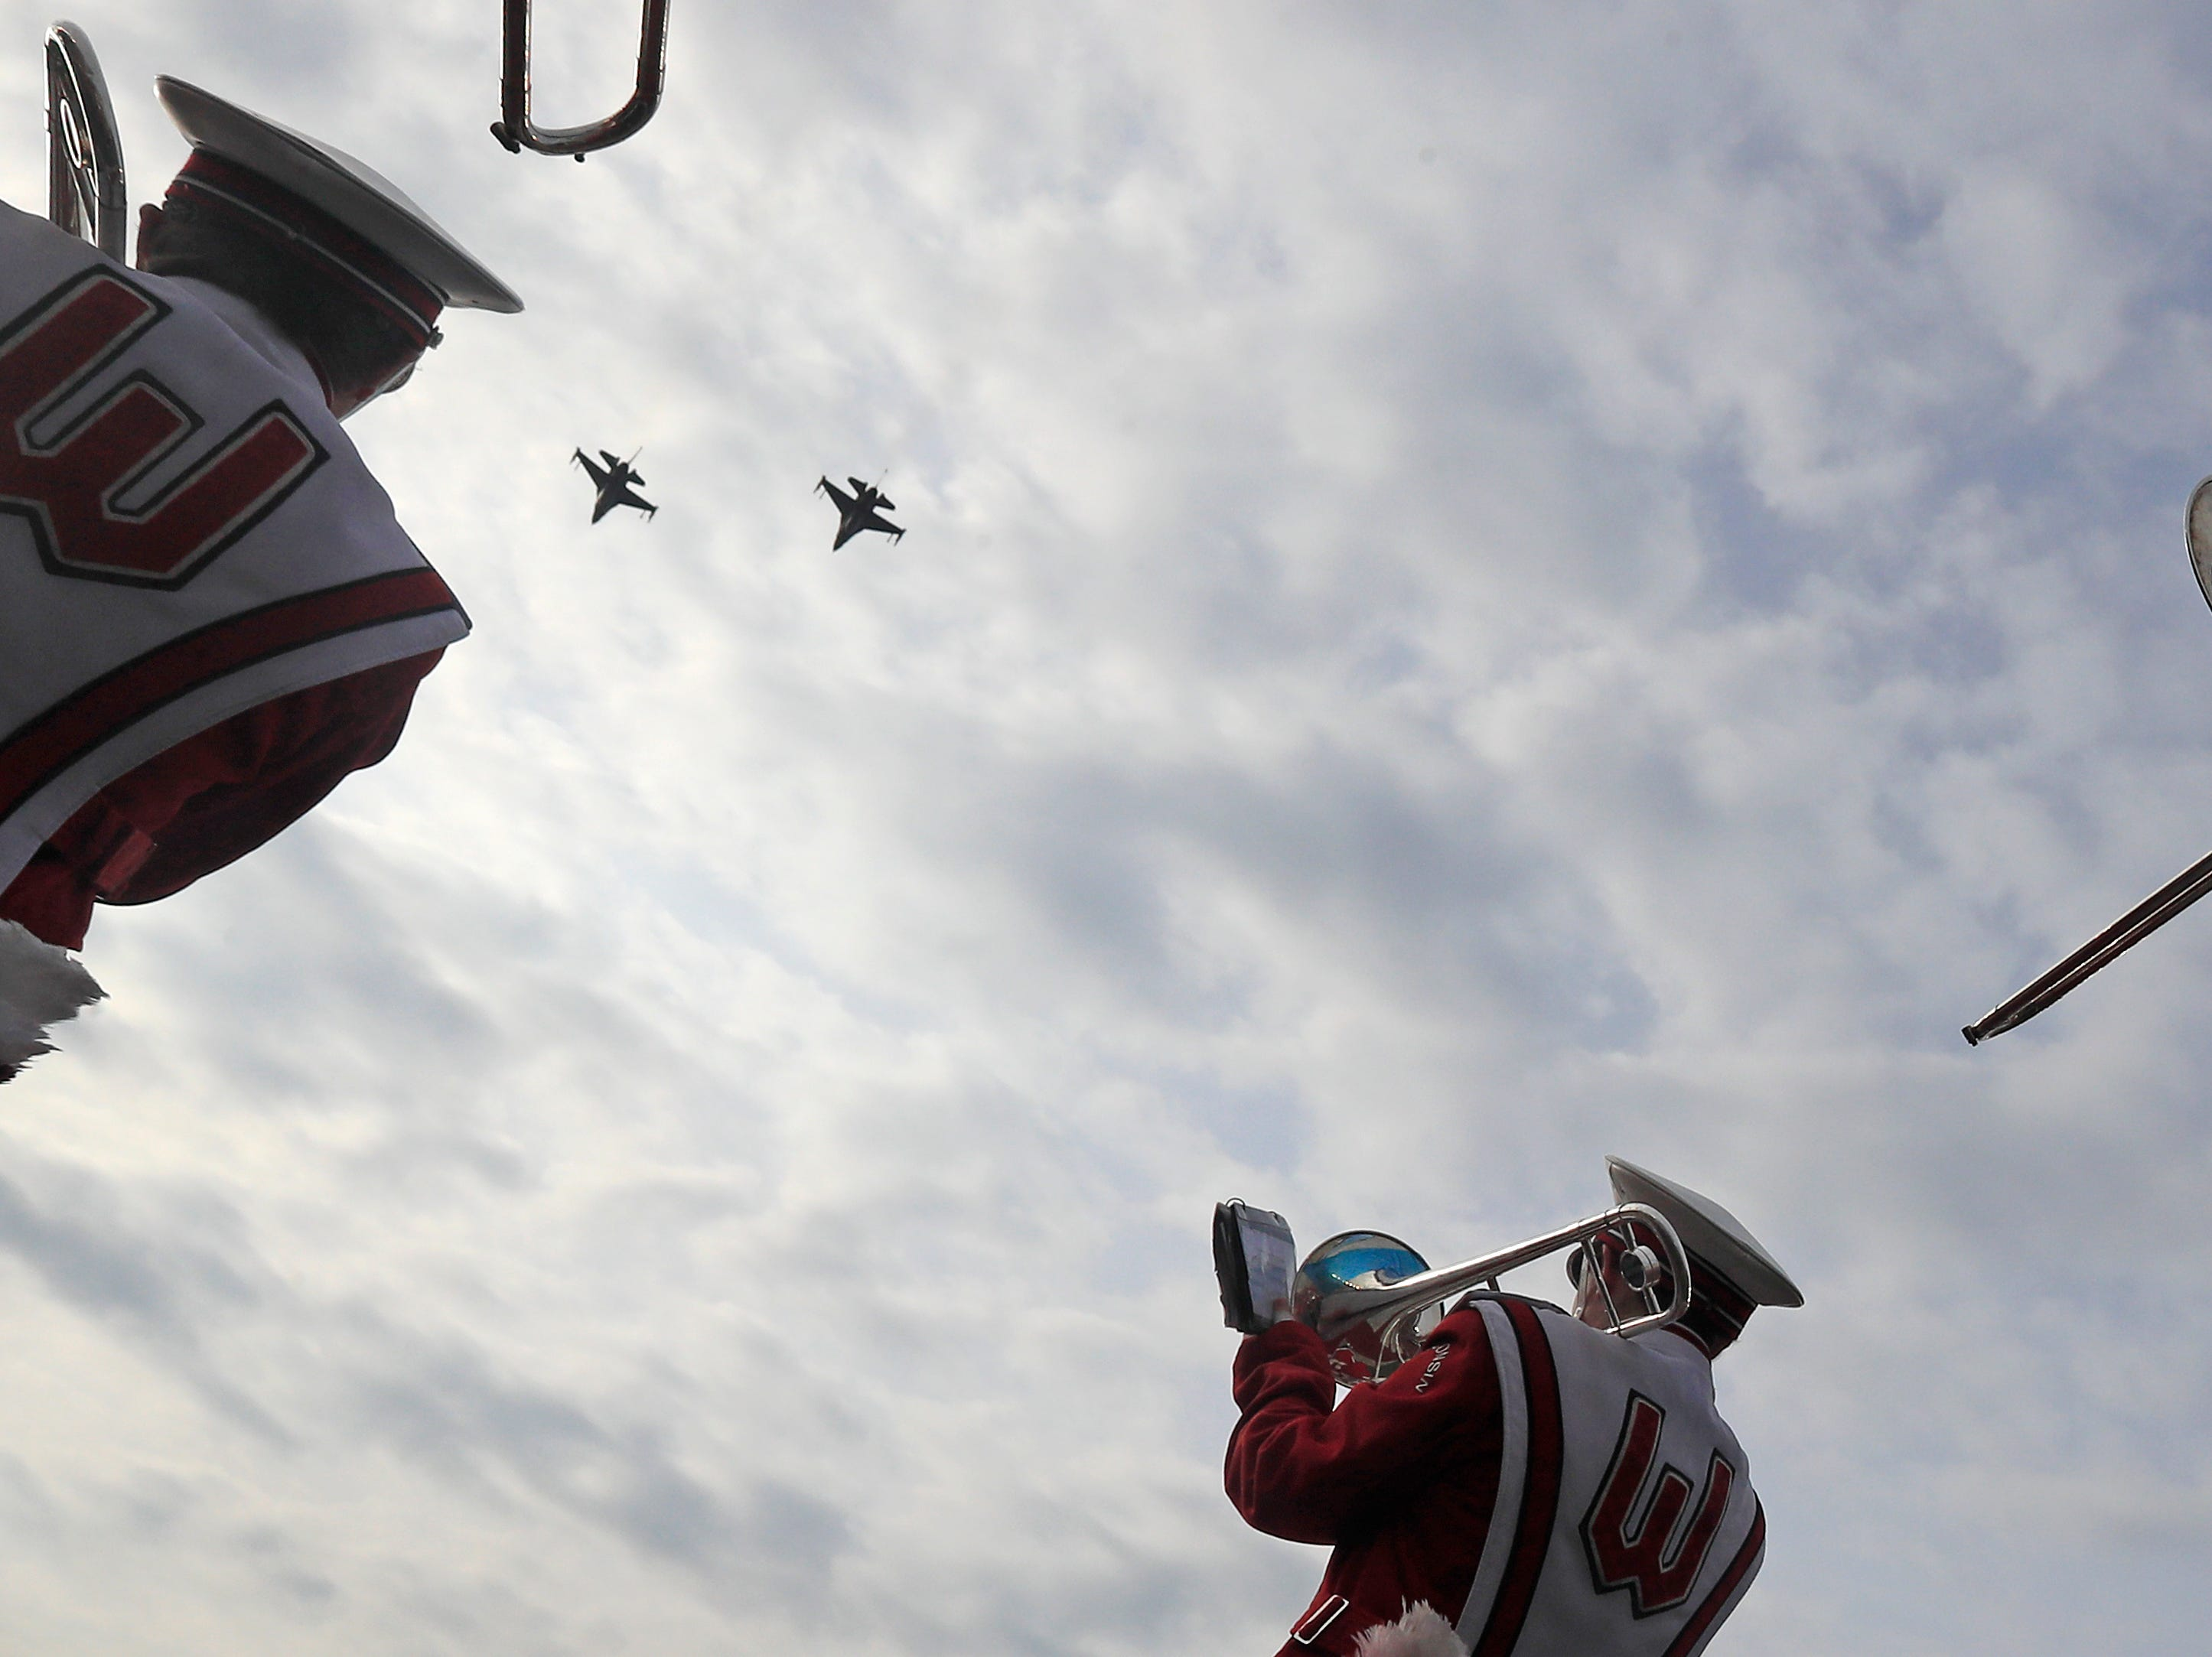 F-15 jets fly over after the national anthem before a Big Ten football game at Camp Randall Stadium on Saturday, November 3, 2018 in Madison, Wis.Adam Wesley/USA TODAY NETWORK-Wisconsin